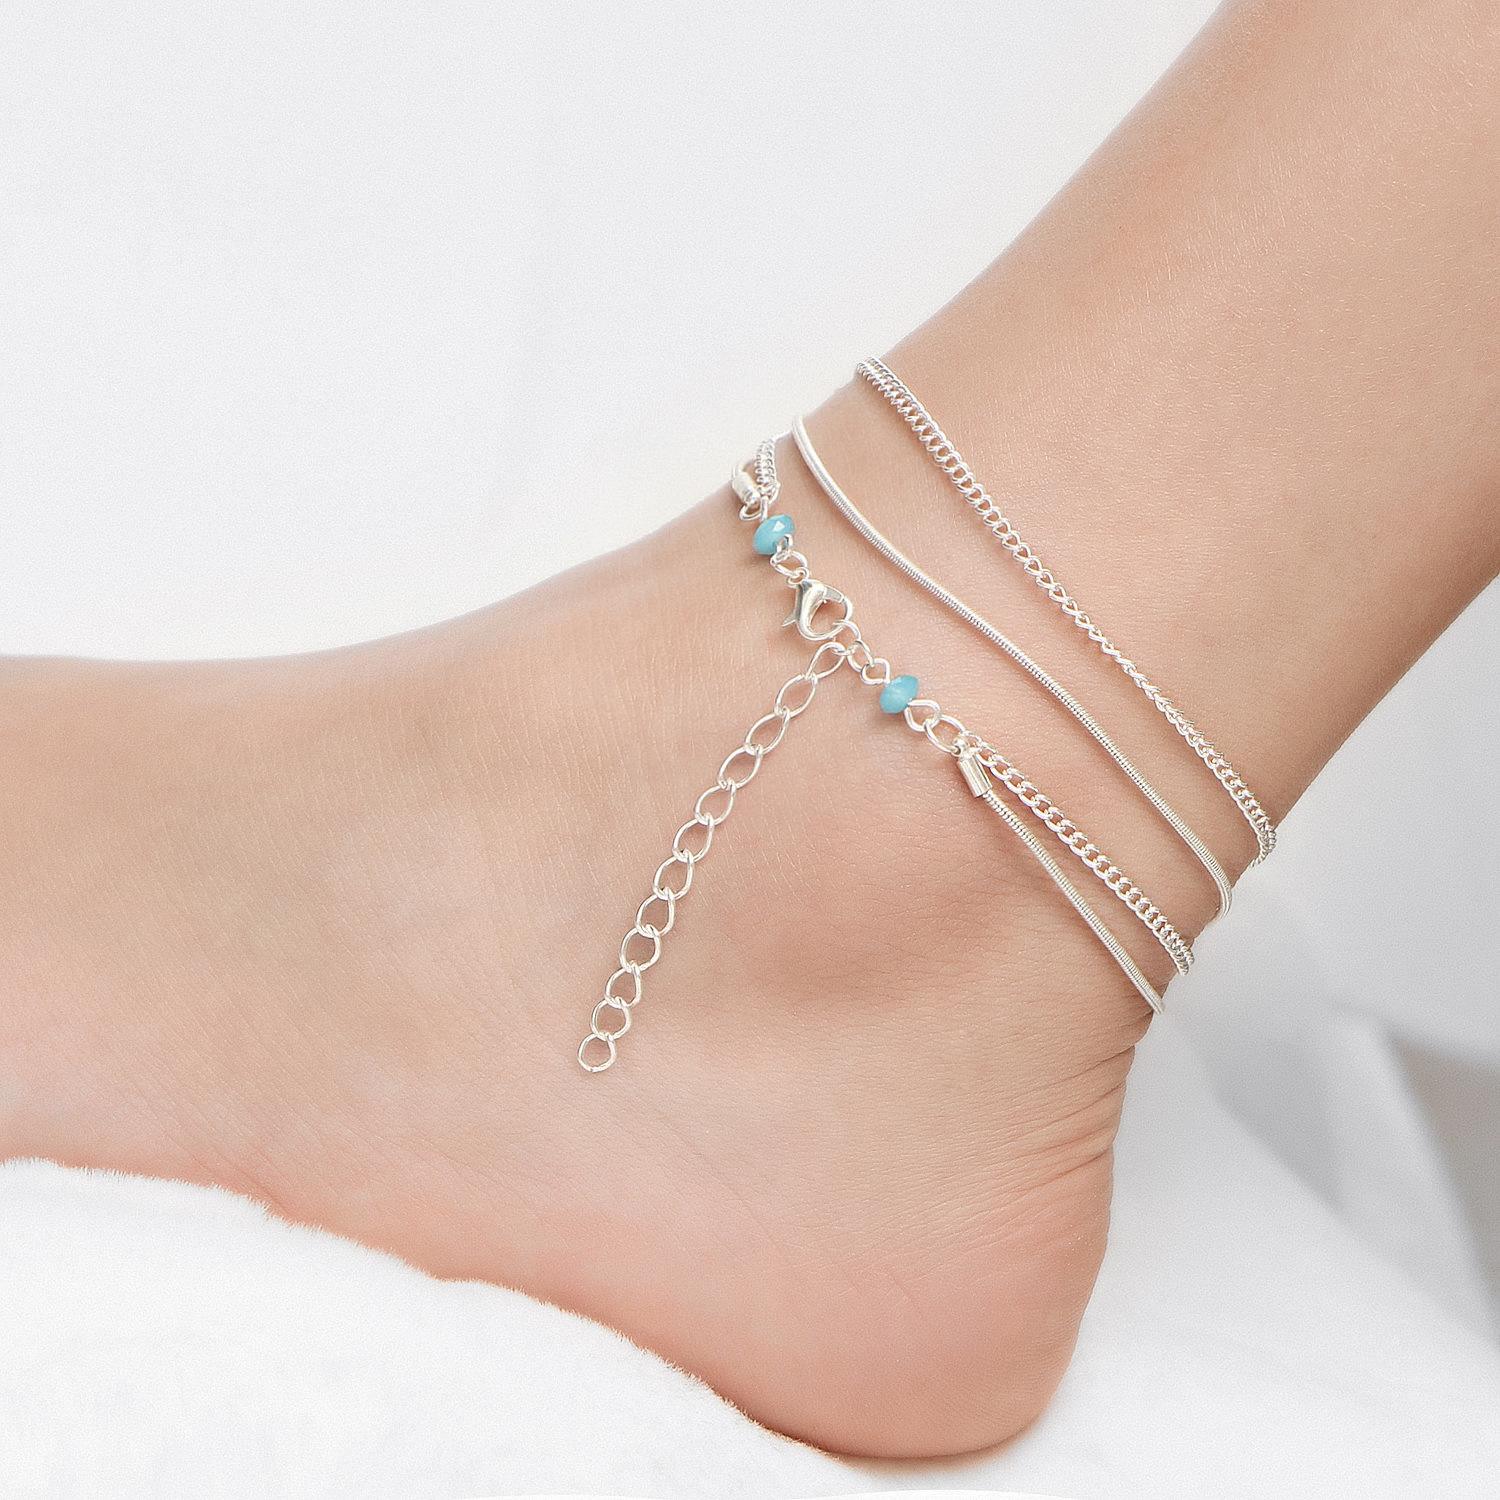 beach leg myshoplah high wedding cuff ankle anklets anklet heel jewellery